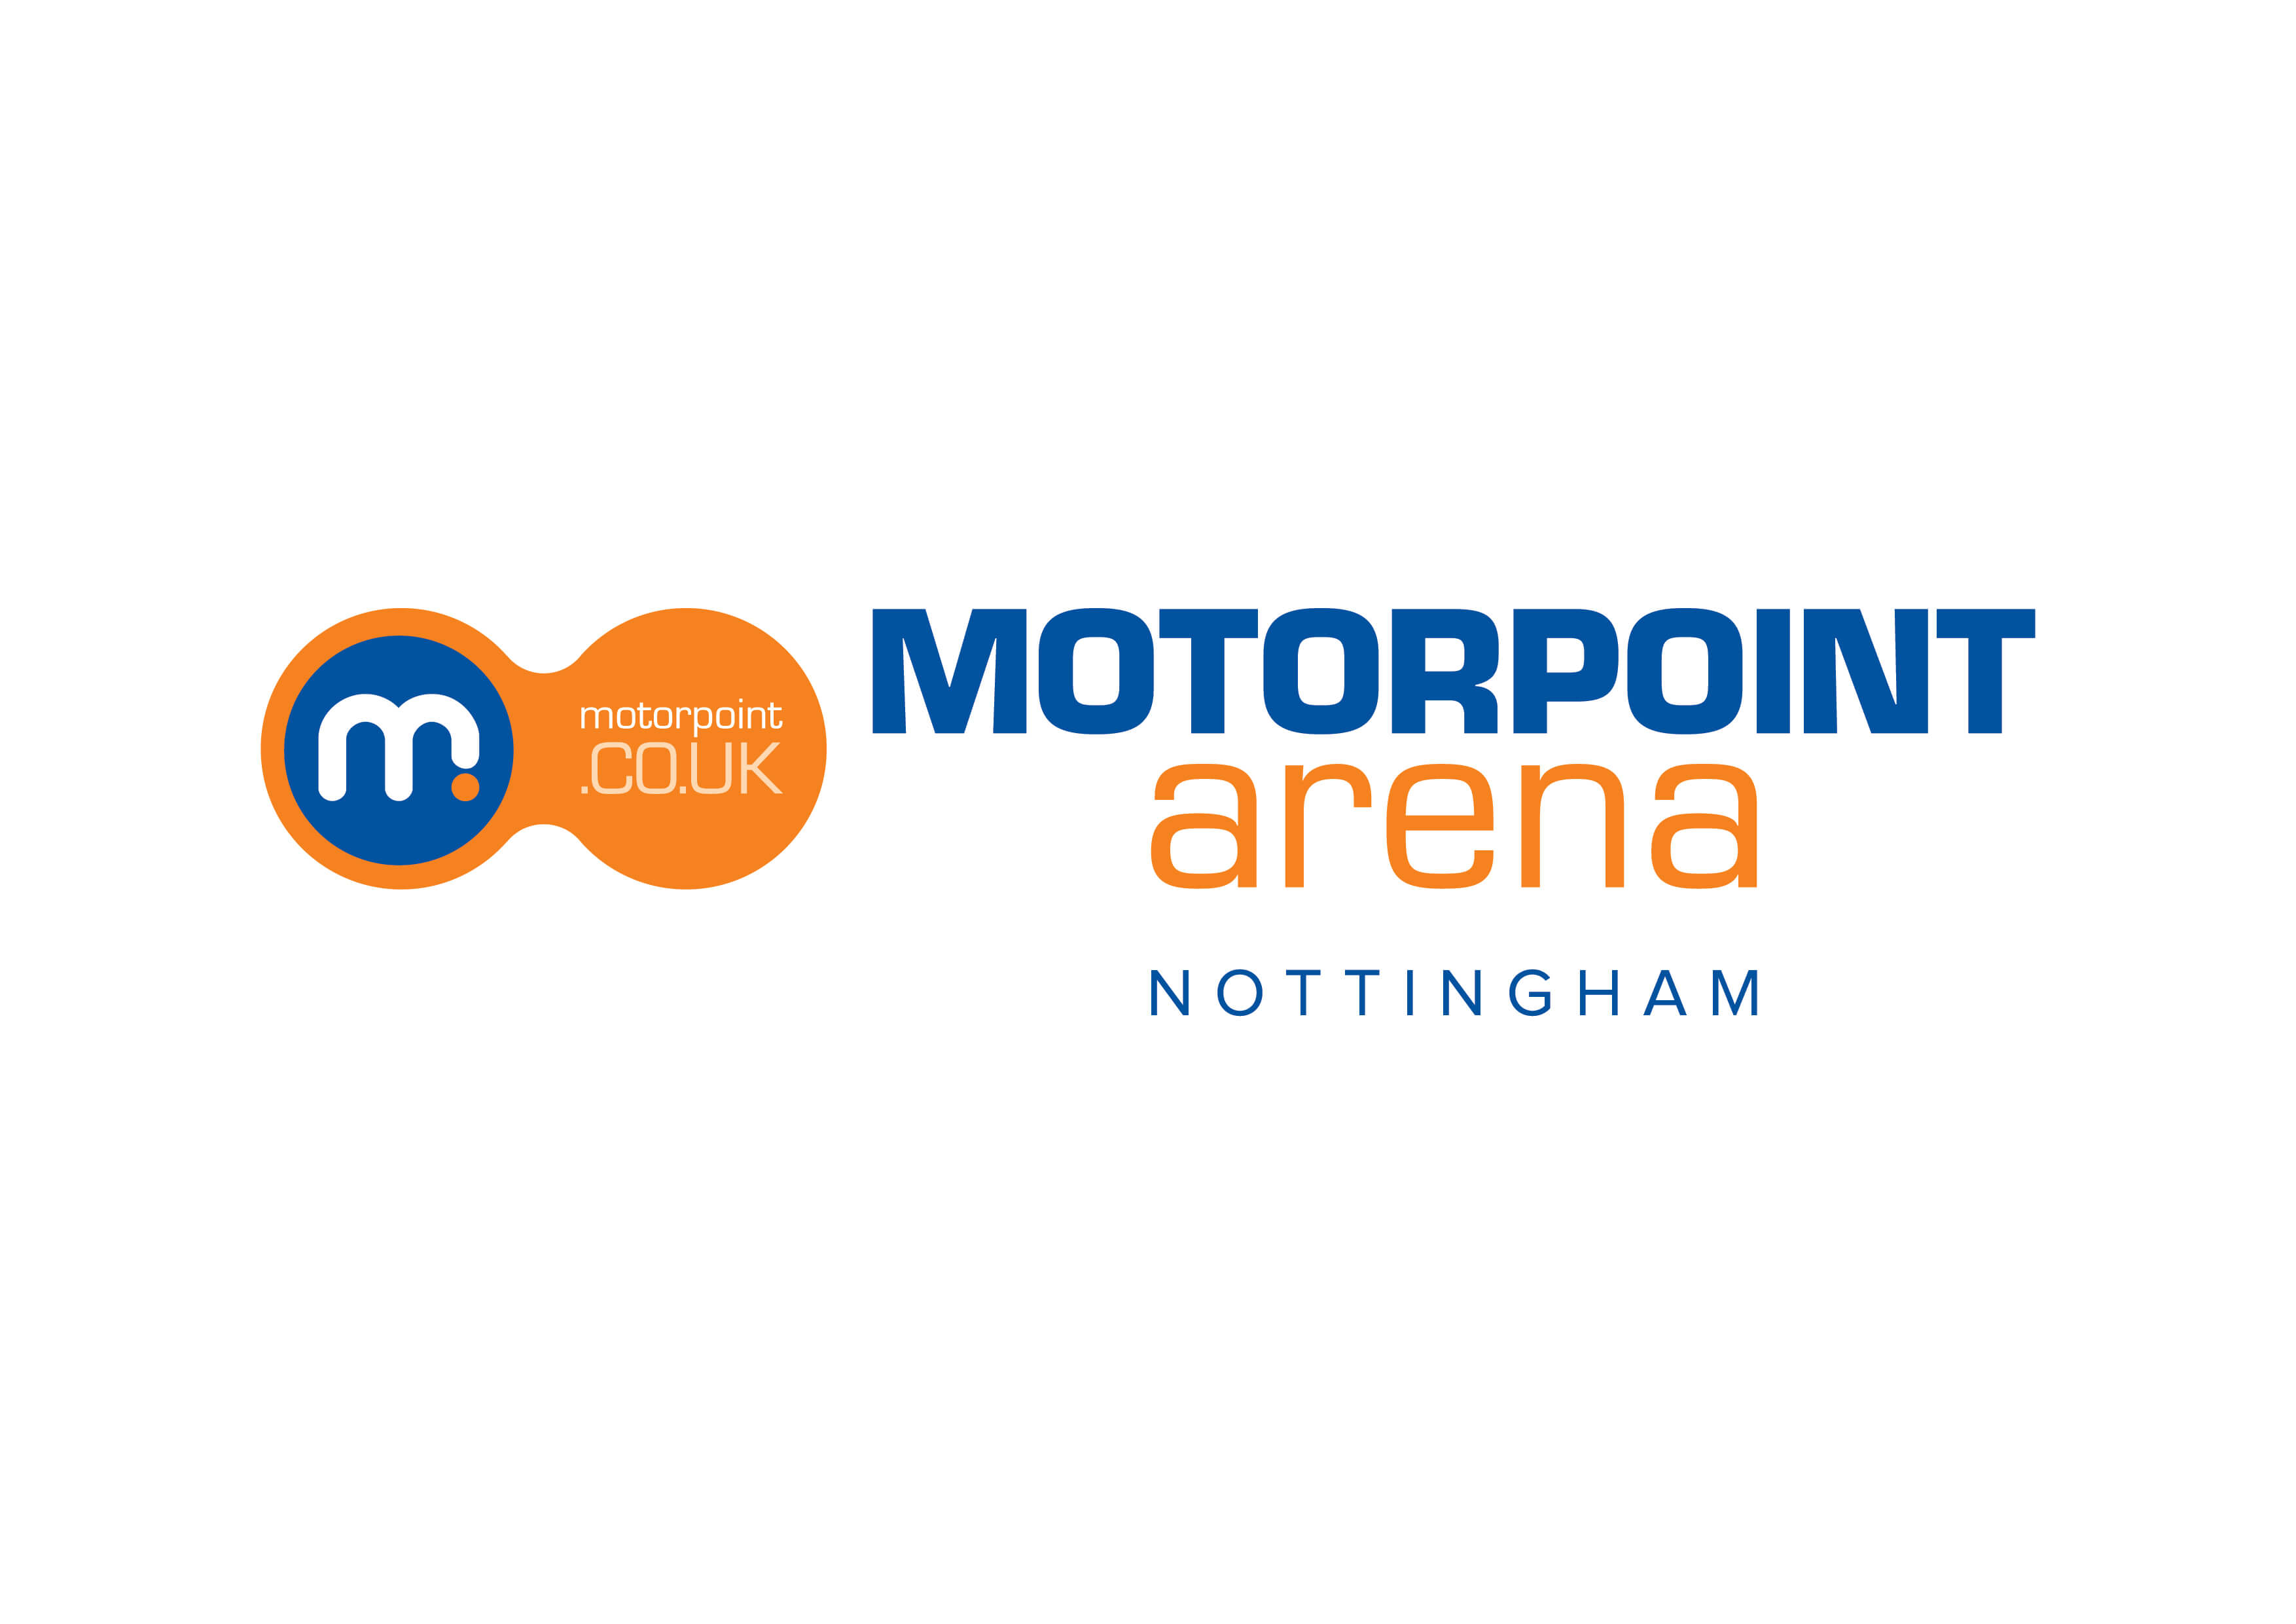 Nottingham Motorpoint Arena Parking